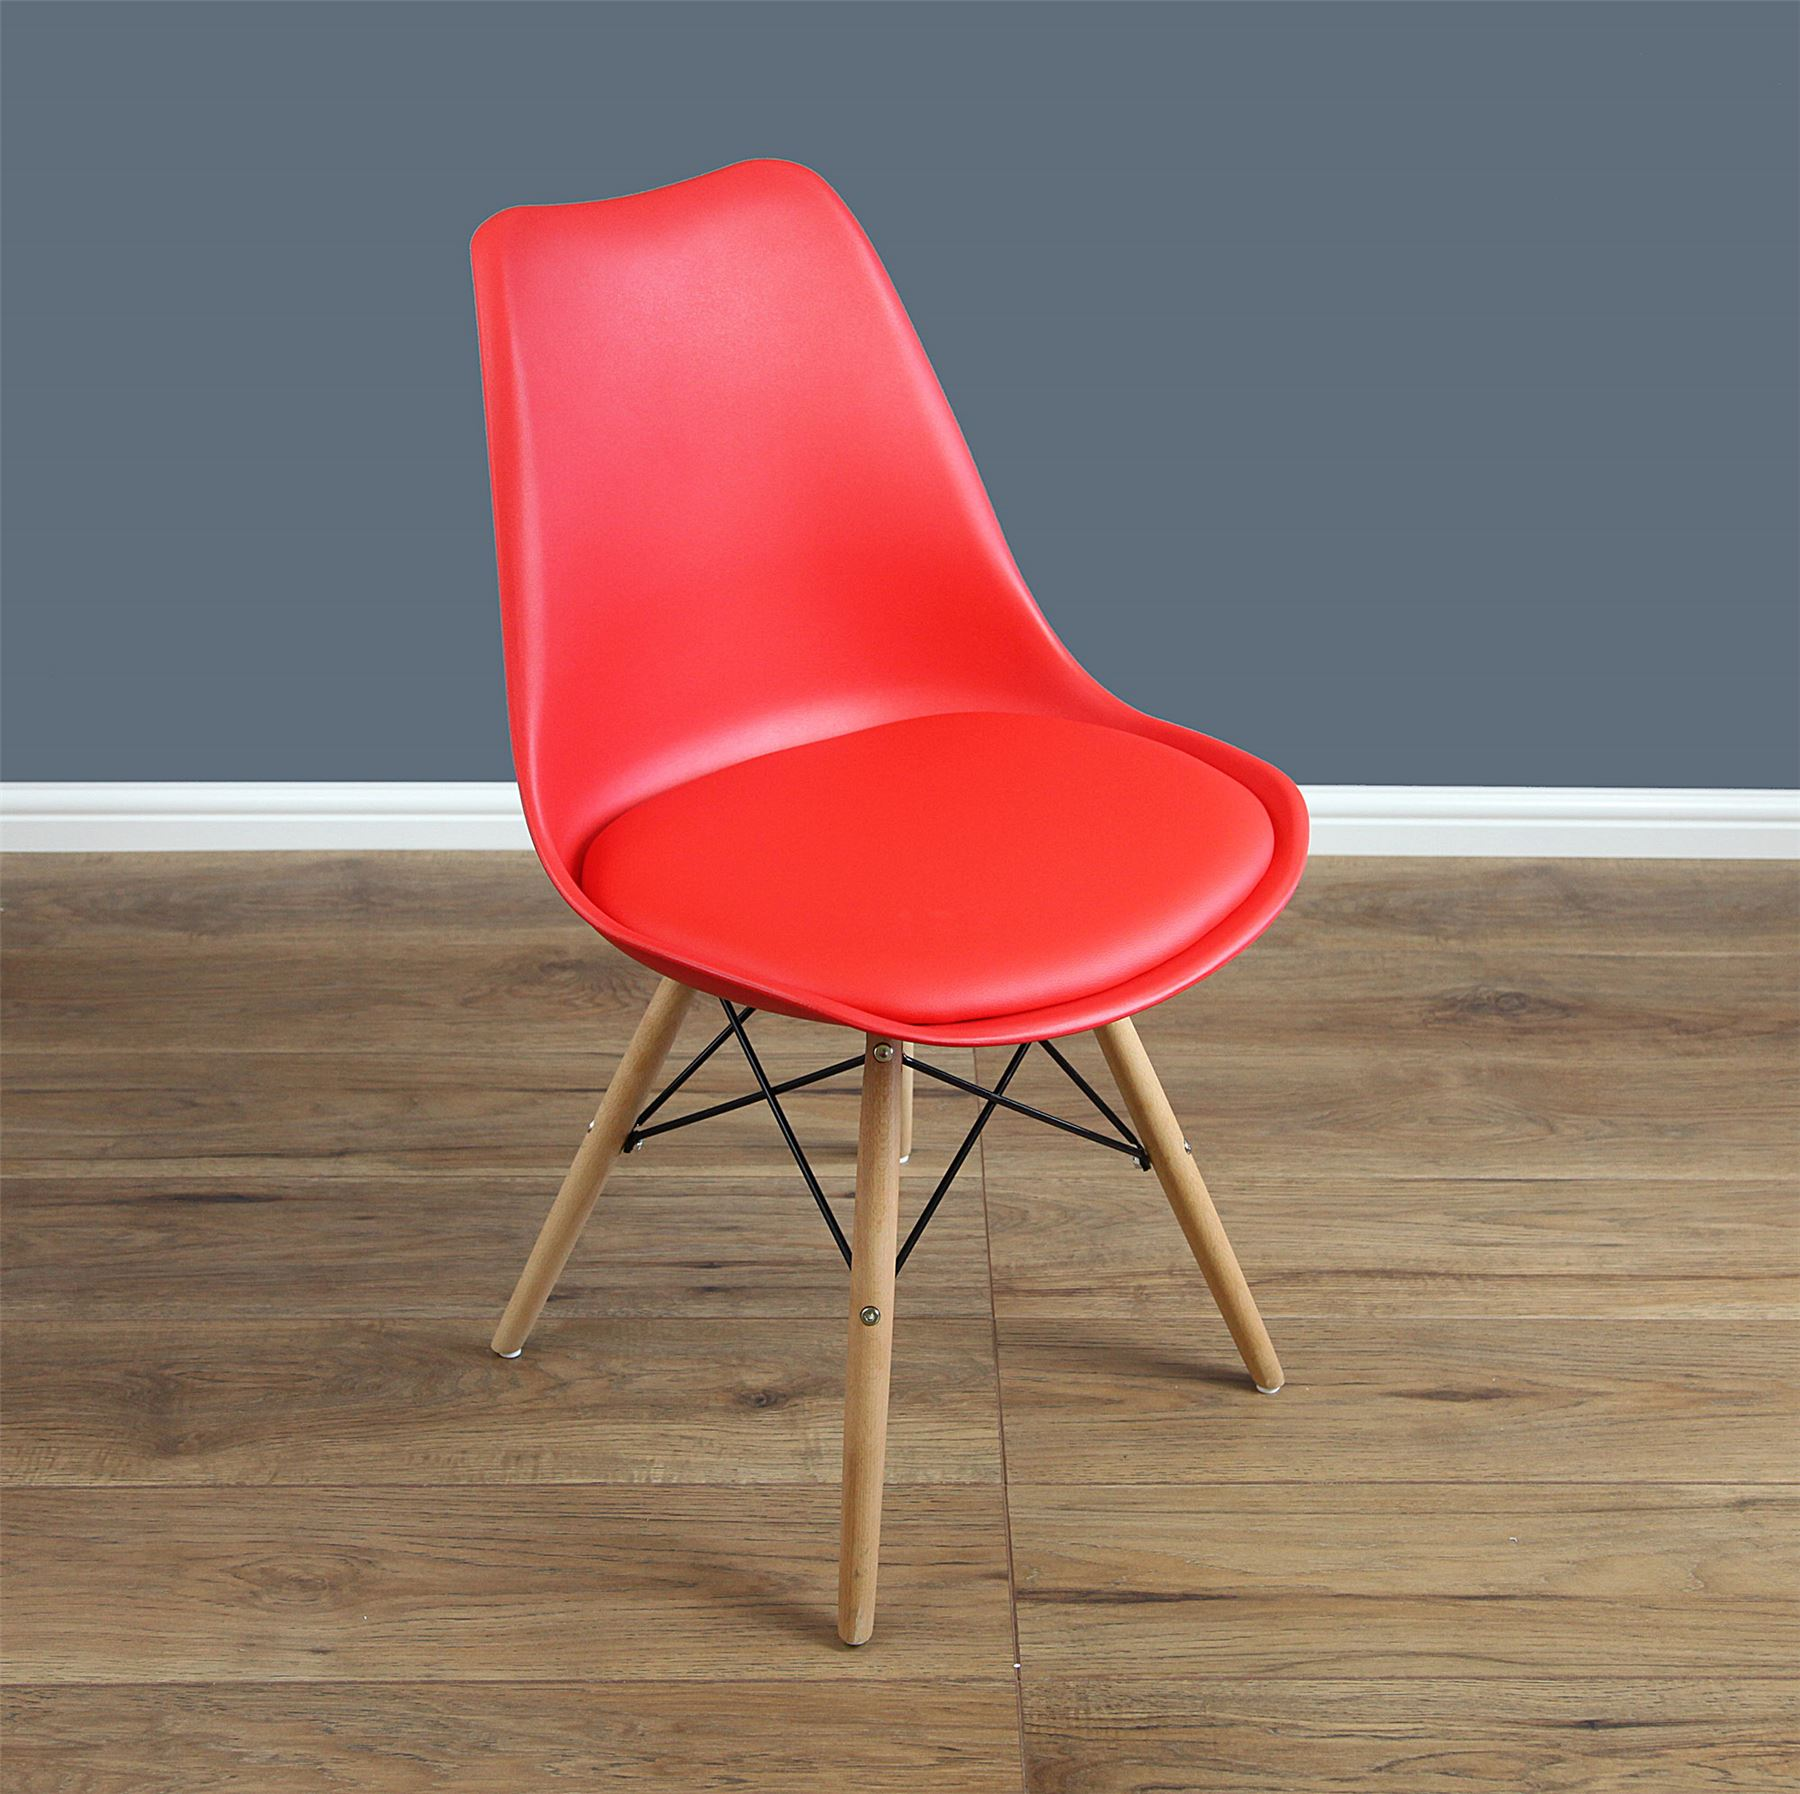 Mmilo Tulip Dining Chair Eiffel inspired Solid Wood Legs with